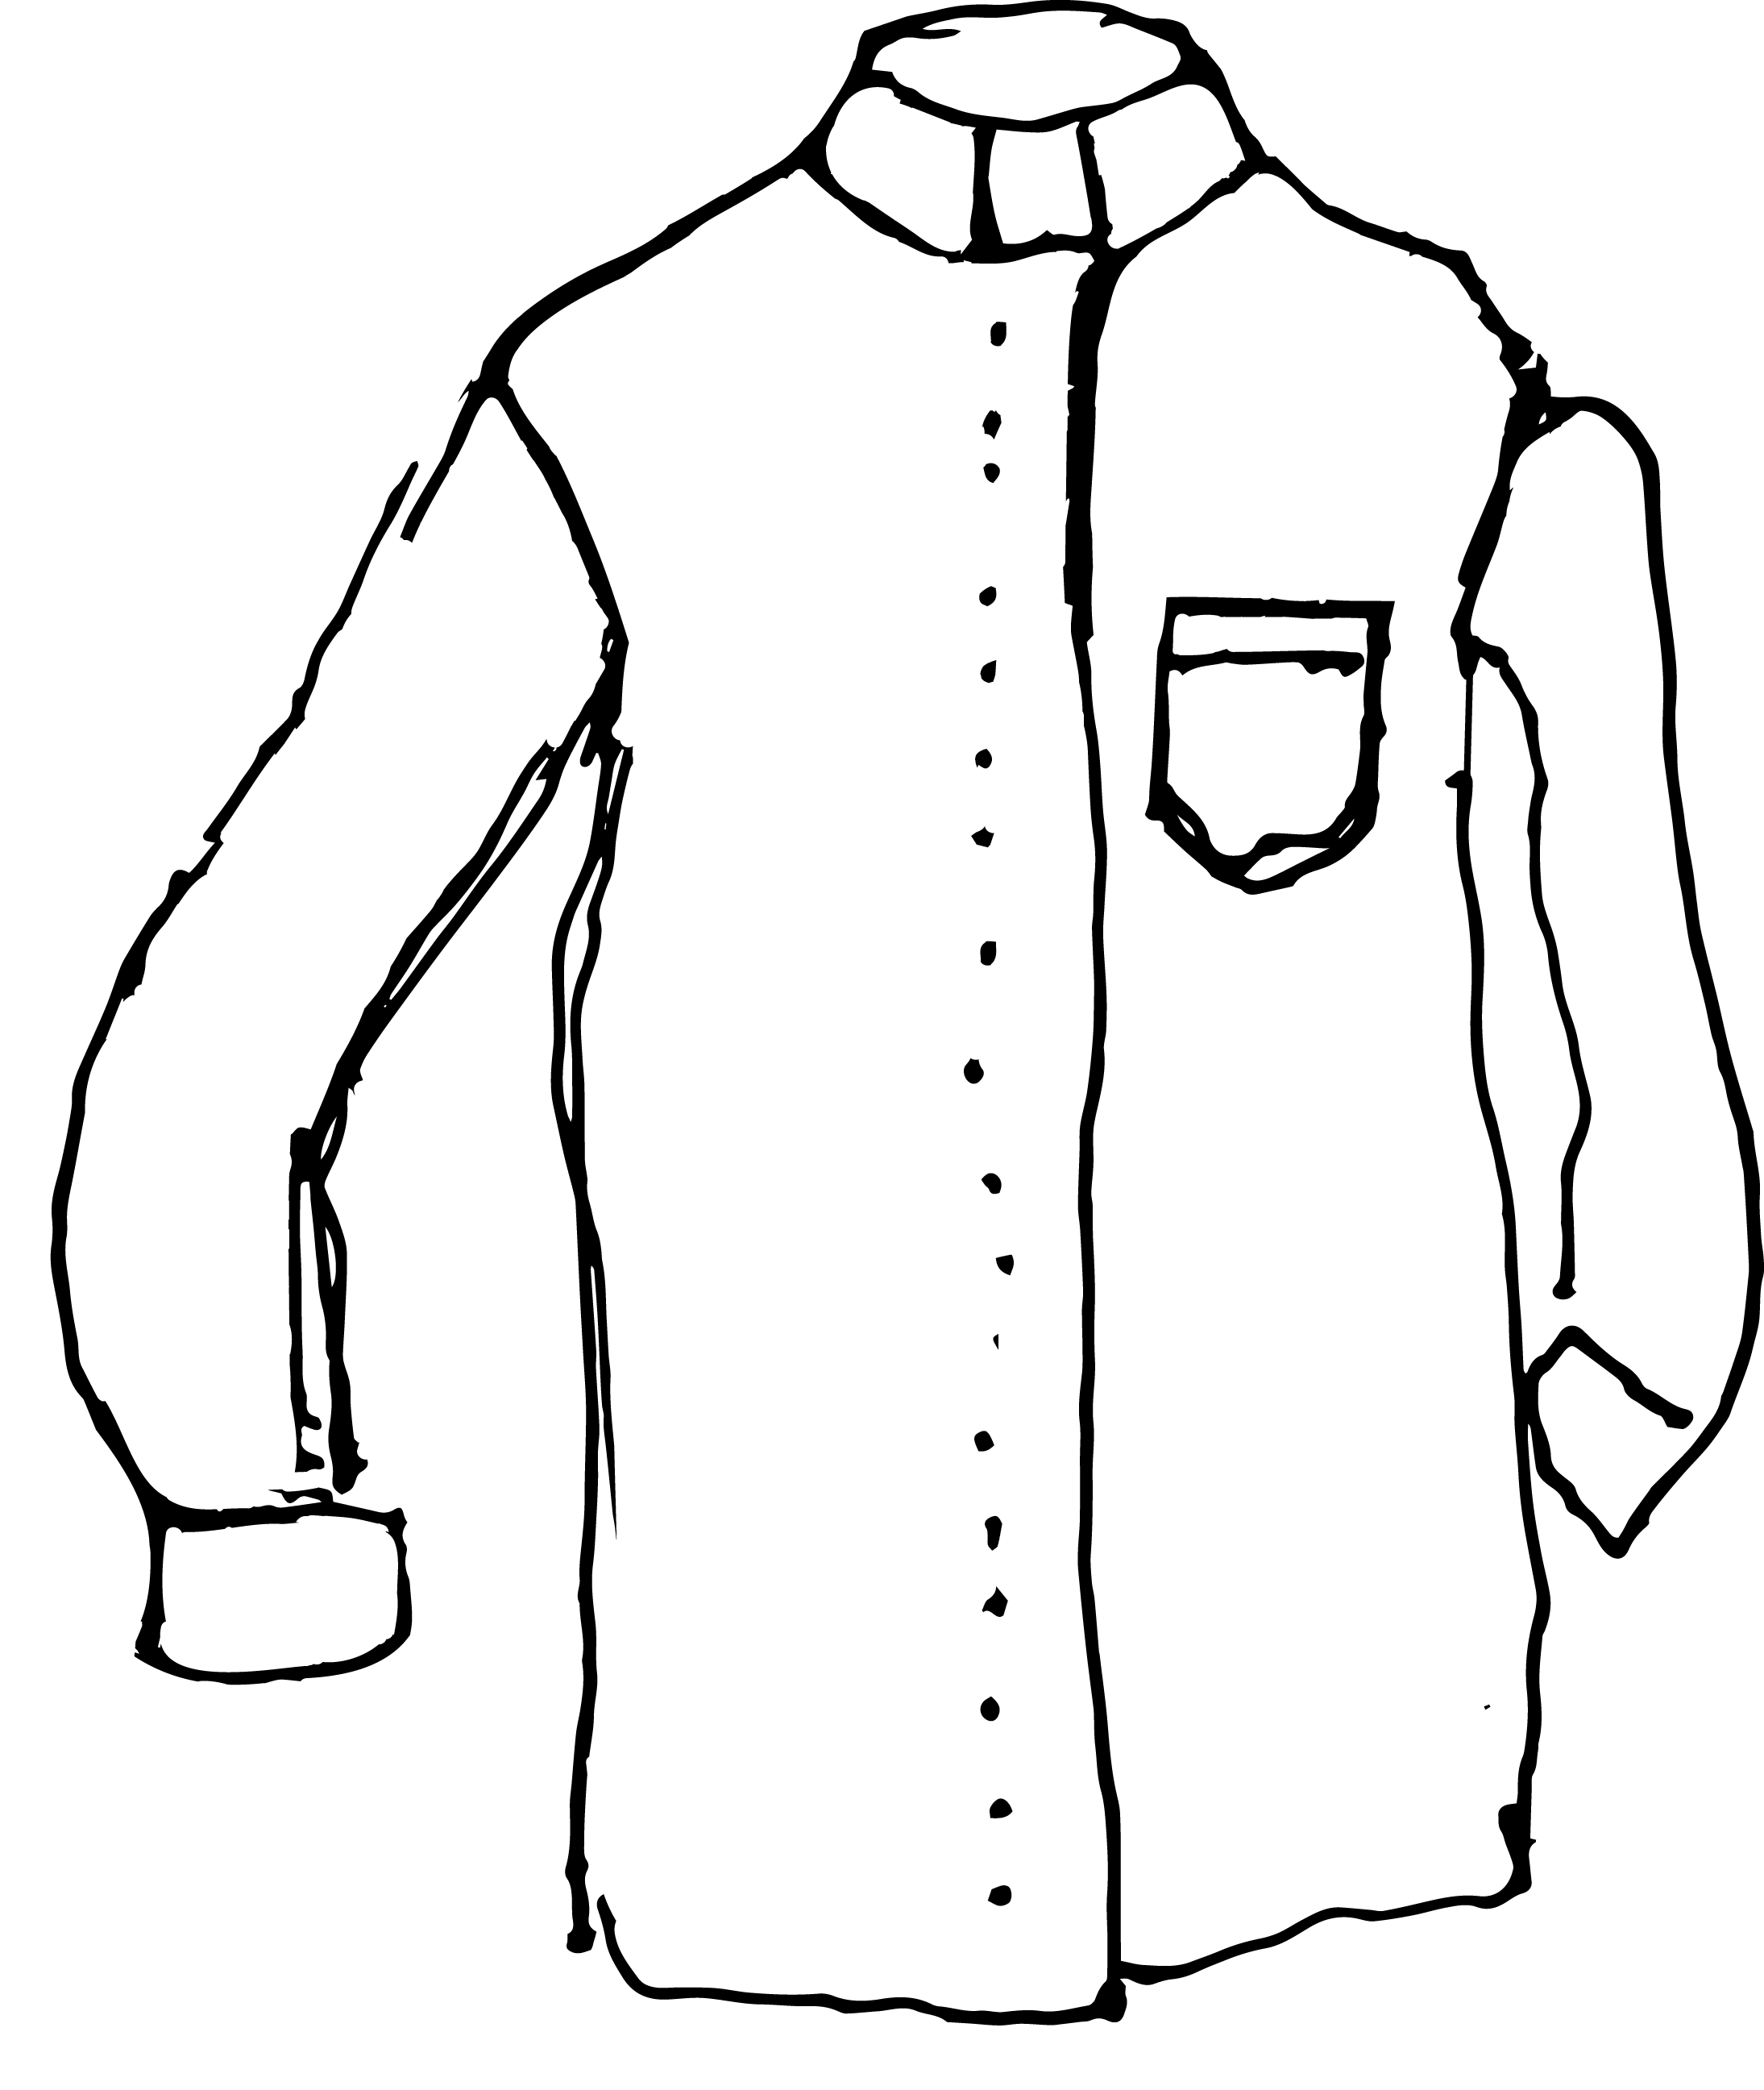 Long-Sleeved Clerical Shirt - White Background.png